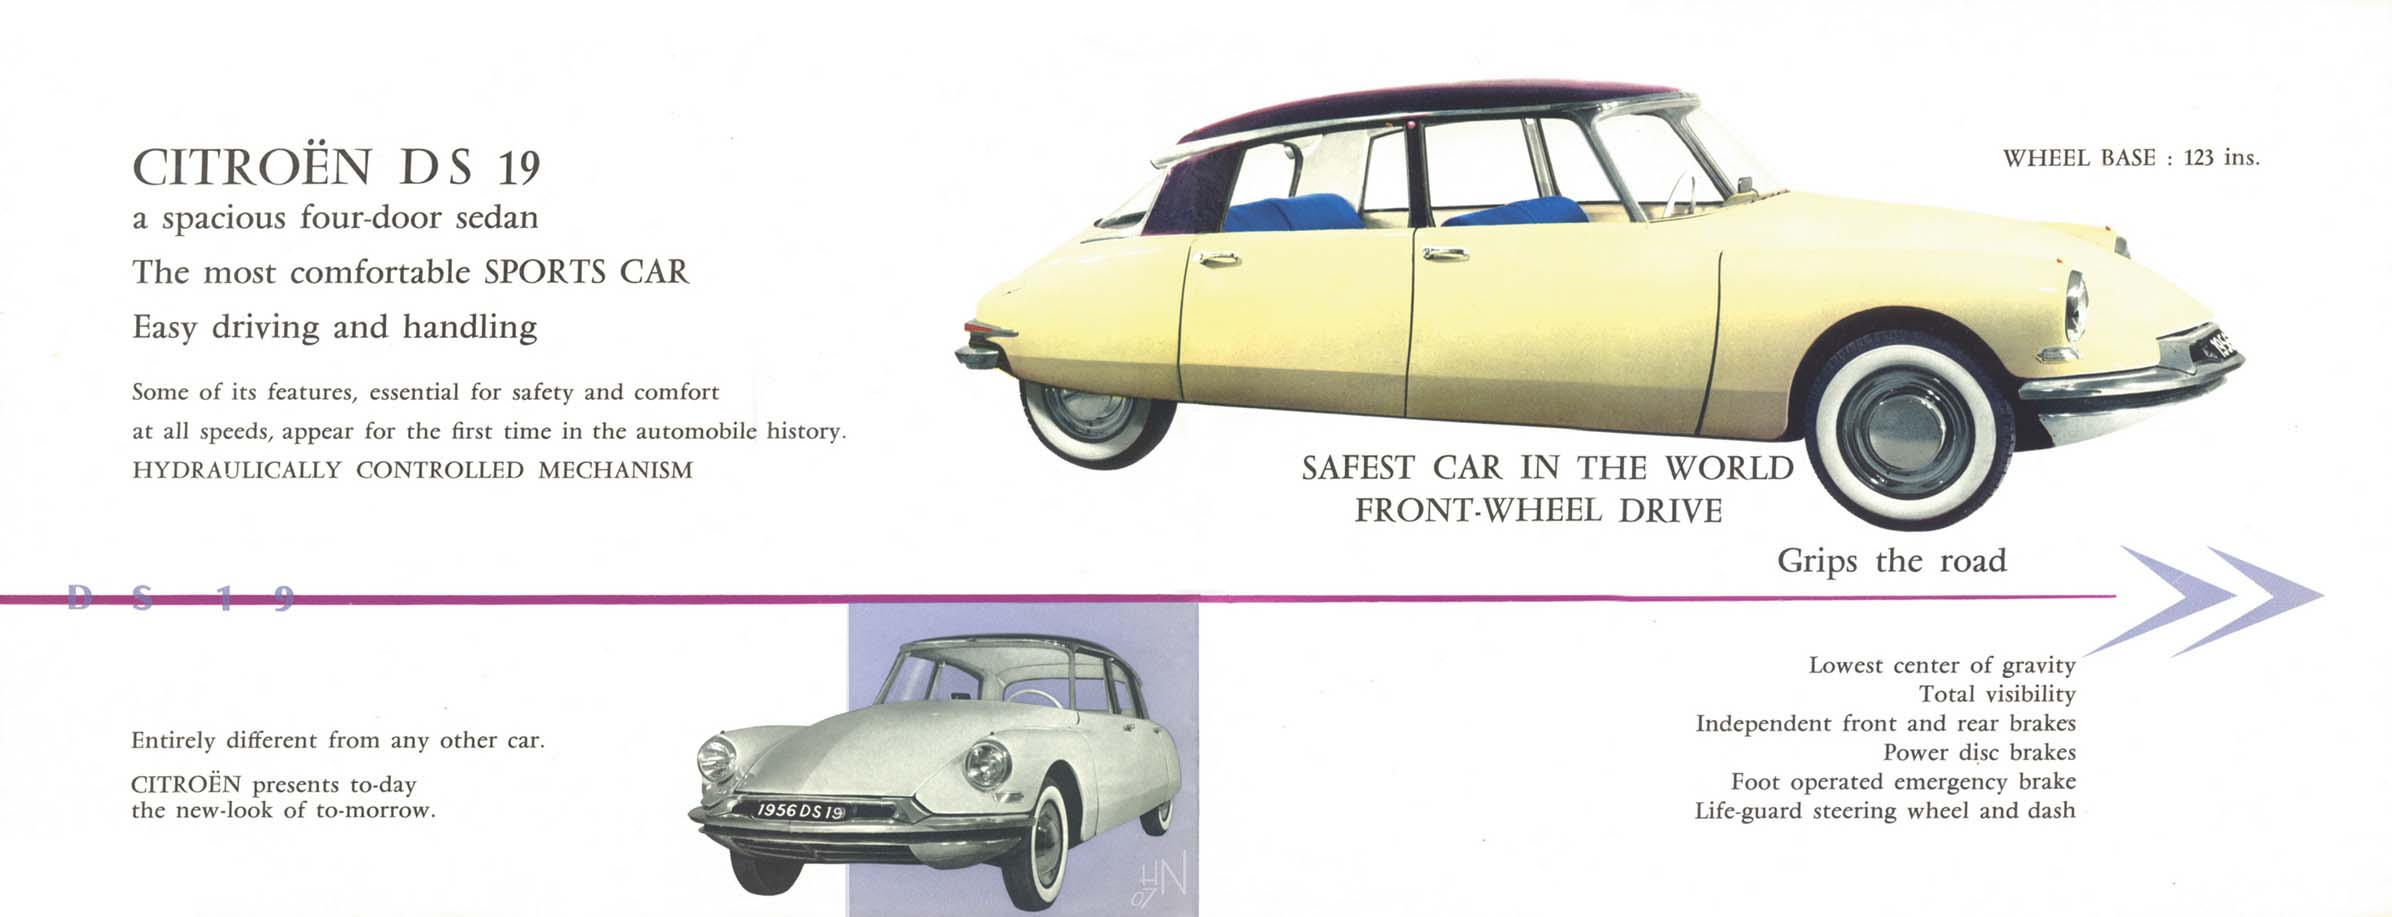 1956 citroen ds 19 brochure citroen ds 1956 howard nourse from the us contributed these scans vanachro Image collections